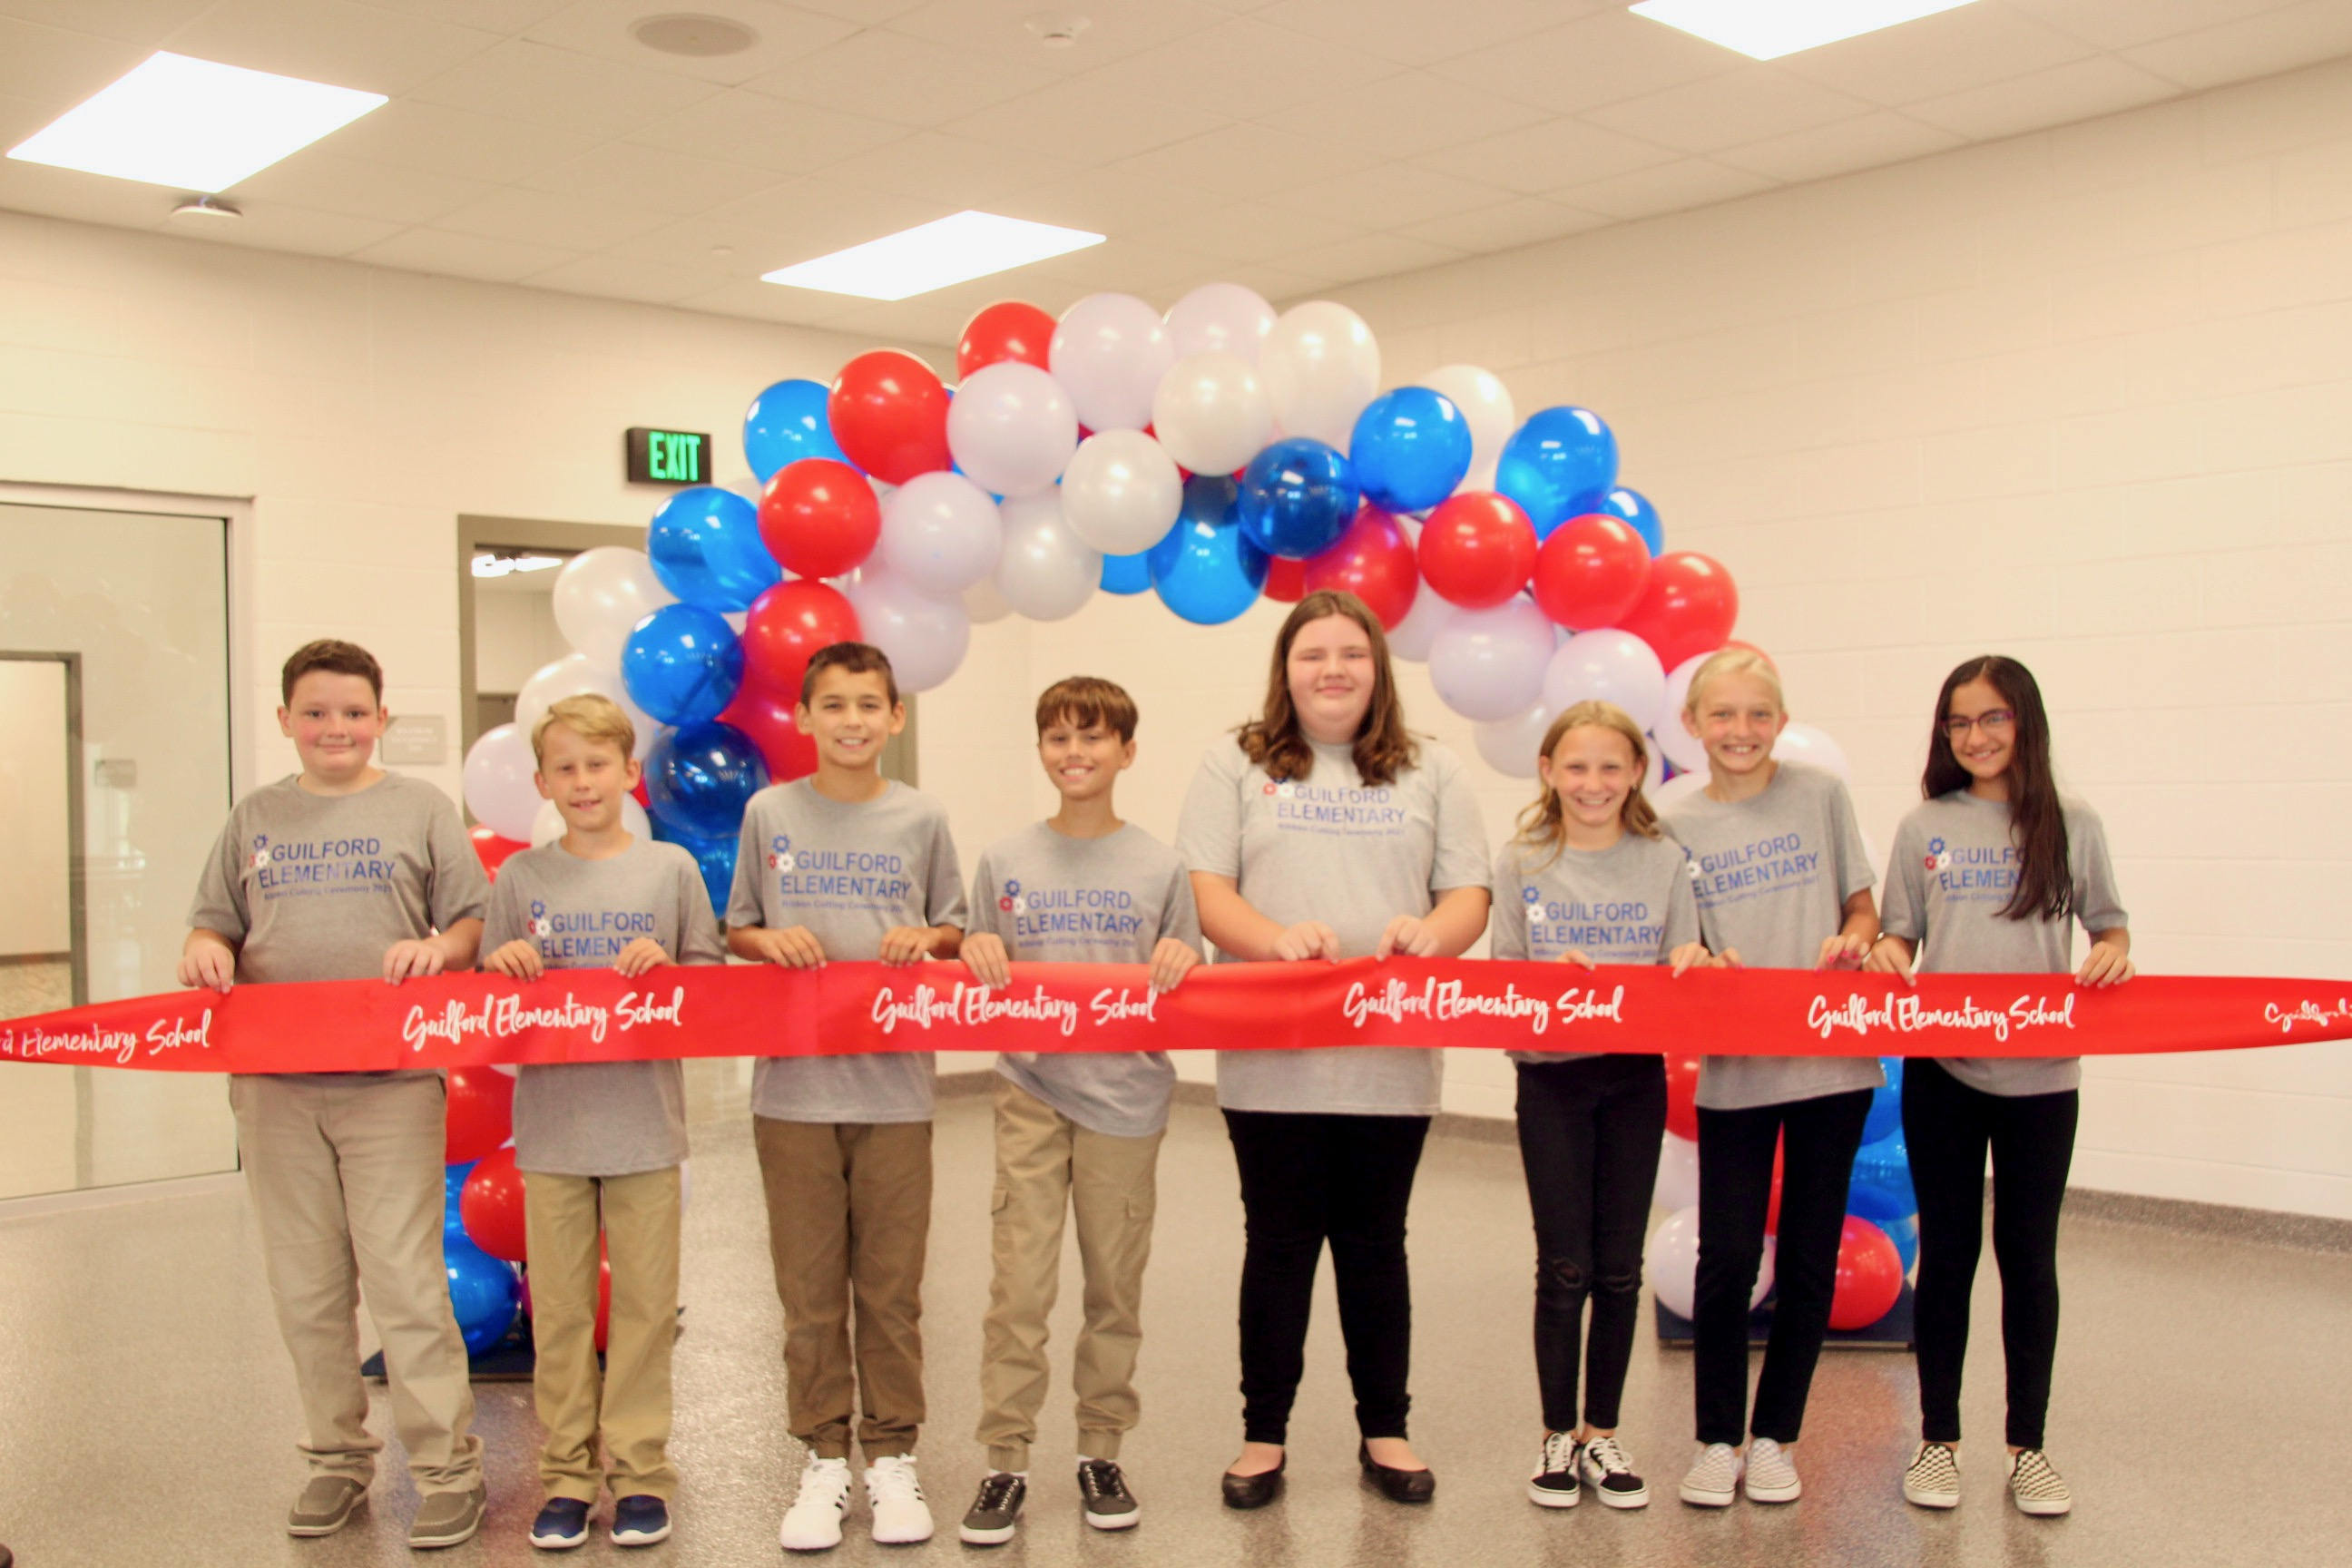 5th grade Ambassadors ready to greet guests and provide tours during the Guilford Elementary School ribbon-cutting event